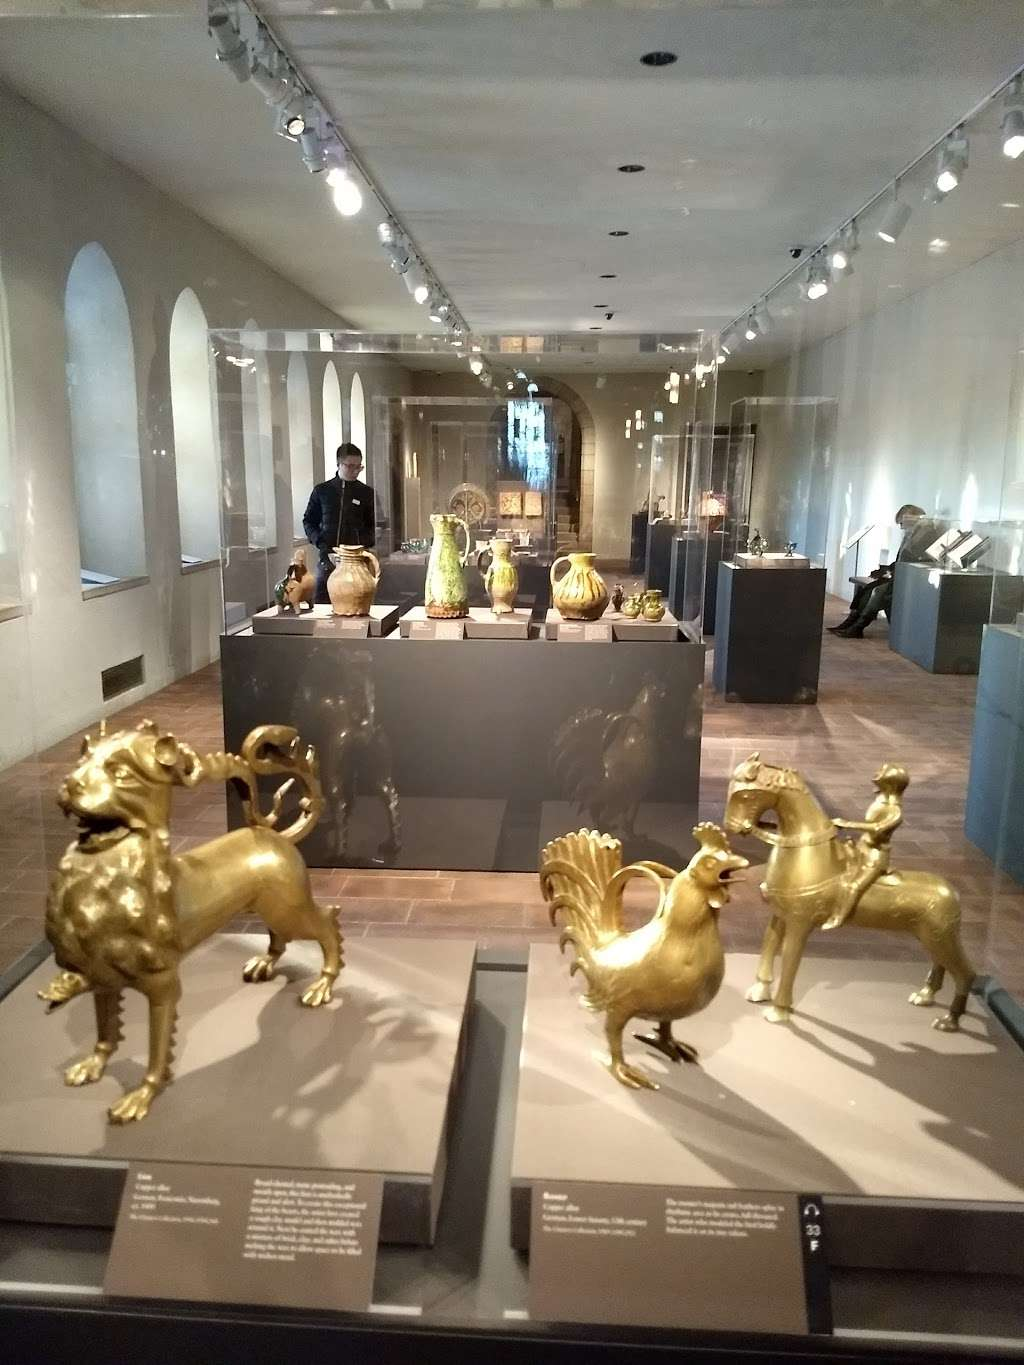 The Met Cloisters - museum  | Photo 7 of 10 | Address: 99 Margaret Corbin Dr, New York, NY 10040, USA | Phone: (212) 923-3700